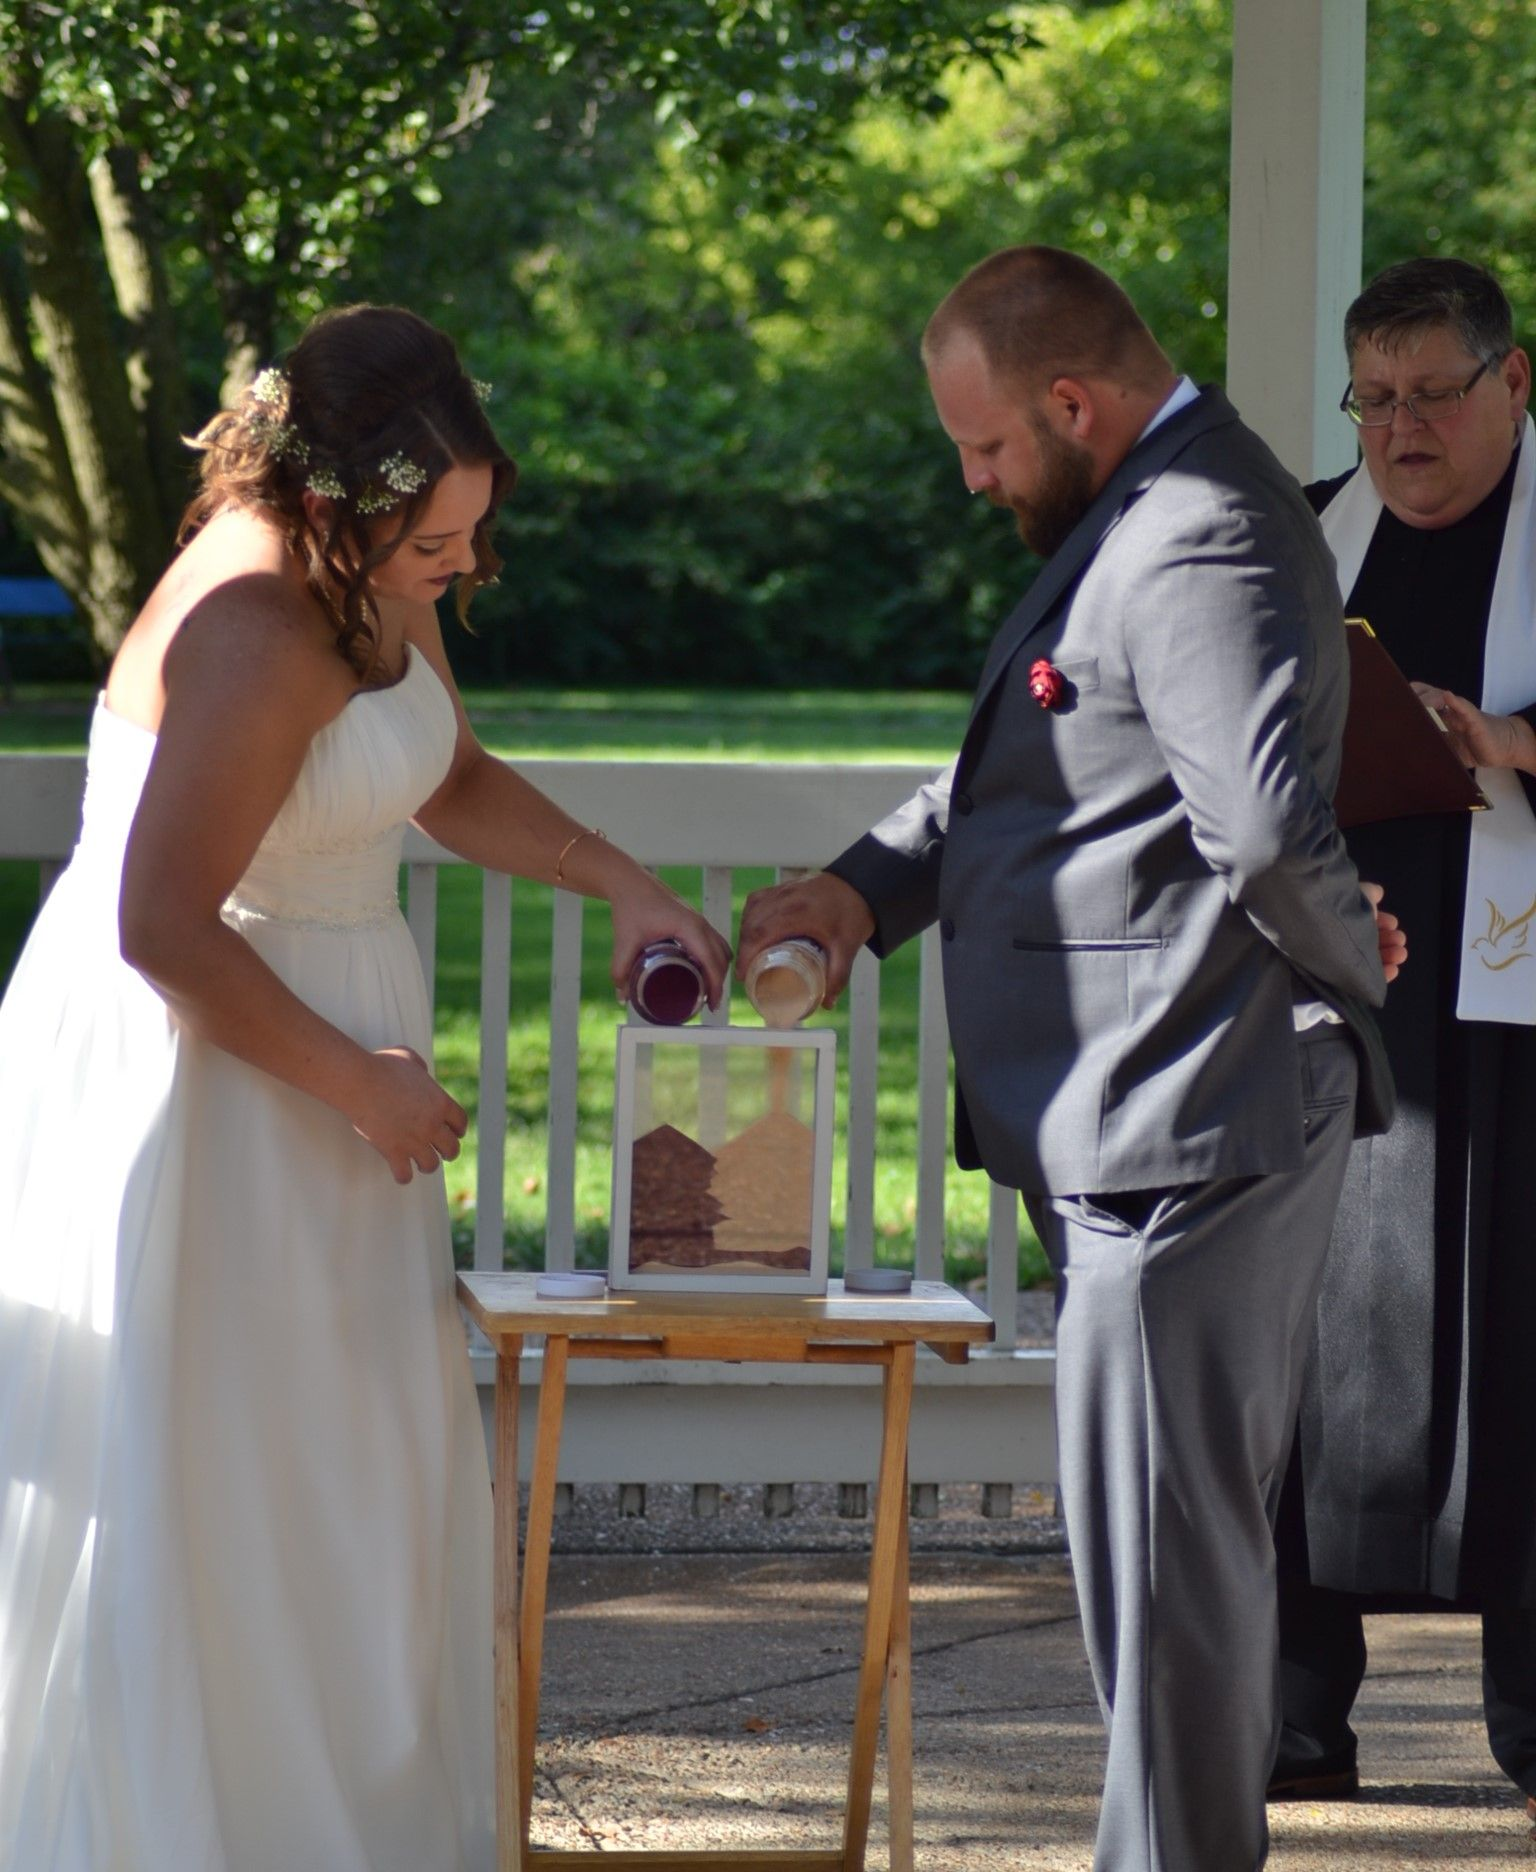 Performing Weddings In The St. Louis Area. Call And